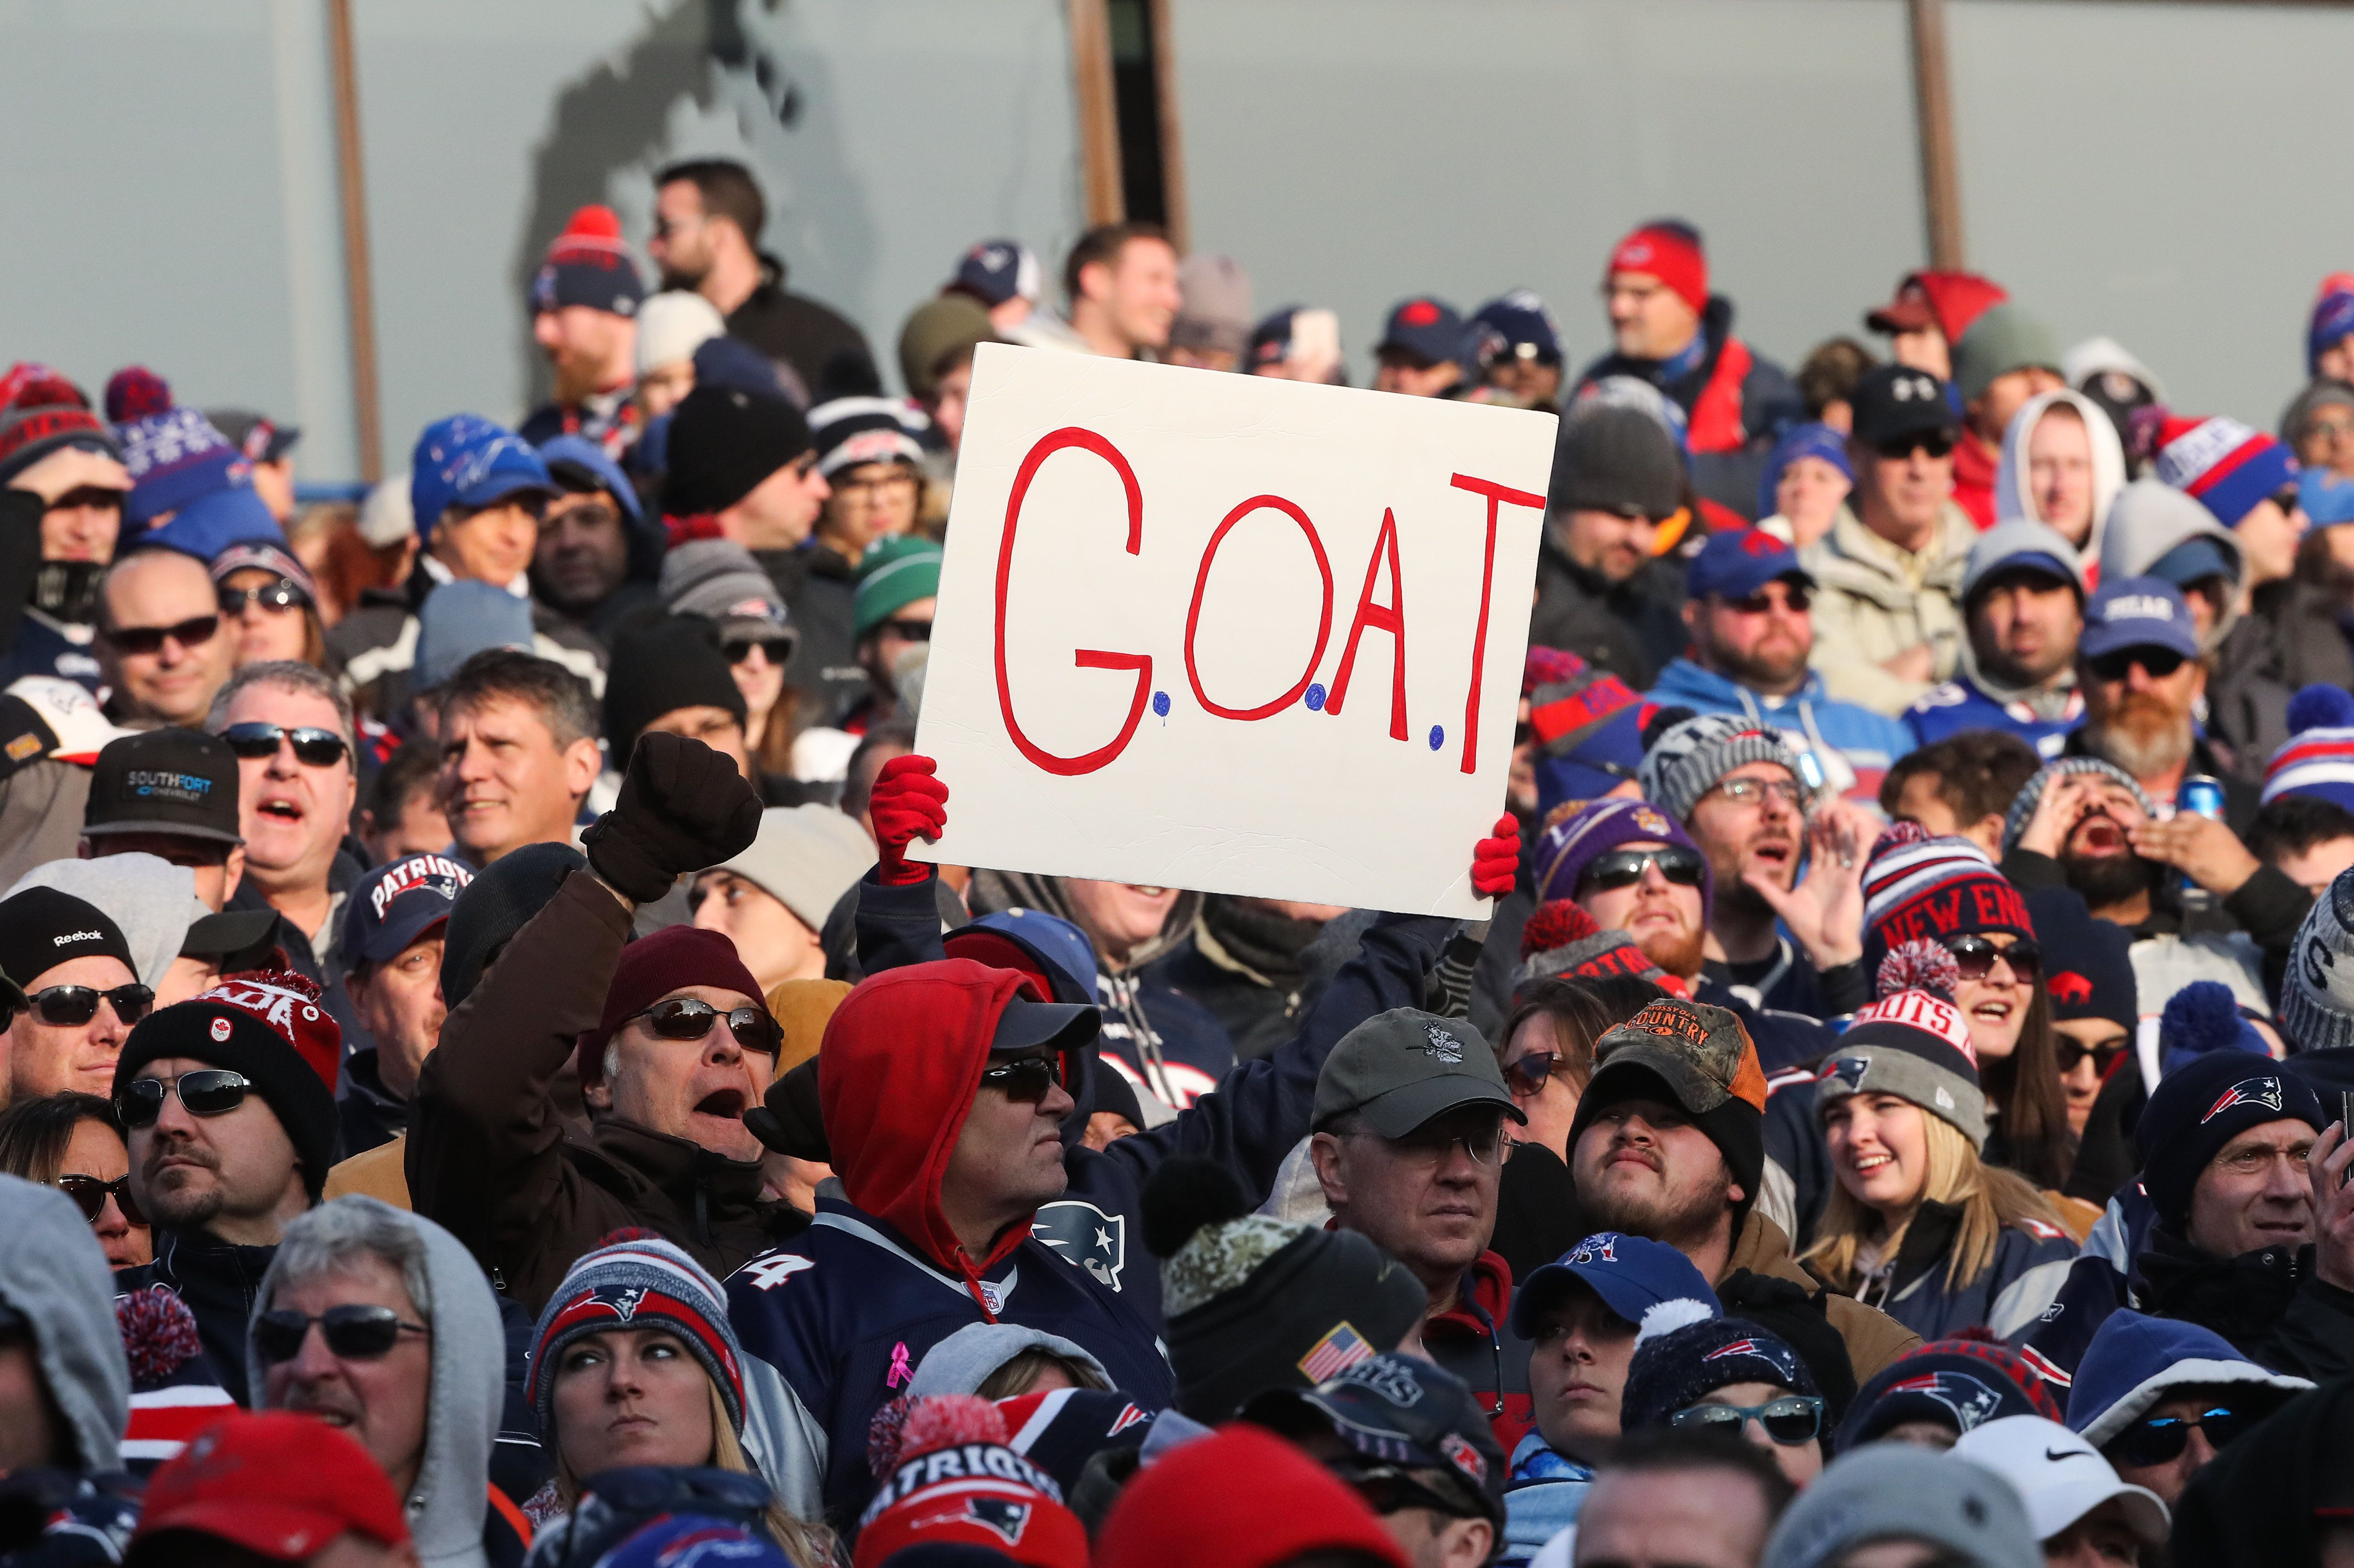 ORCHARD PARK, NY - DECEMBER 3:  A New England Patriots fan holds up a sign during the fourth quarter against the Buffalo Bills on December 3, 2017 at New Era Field in Orchard Park, New York.  (Photo by Tom Szczerbowski/Getty Images)